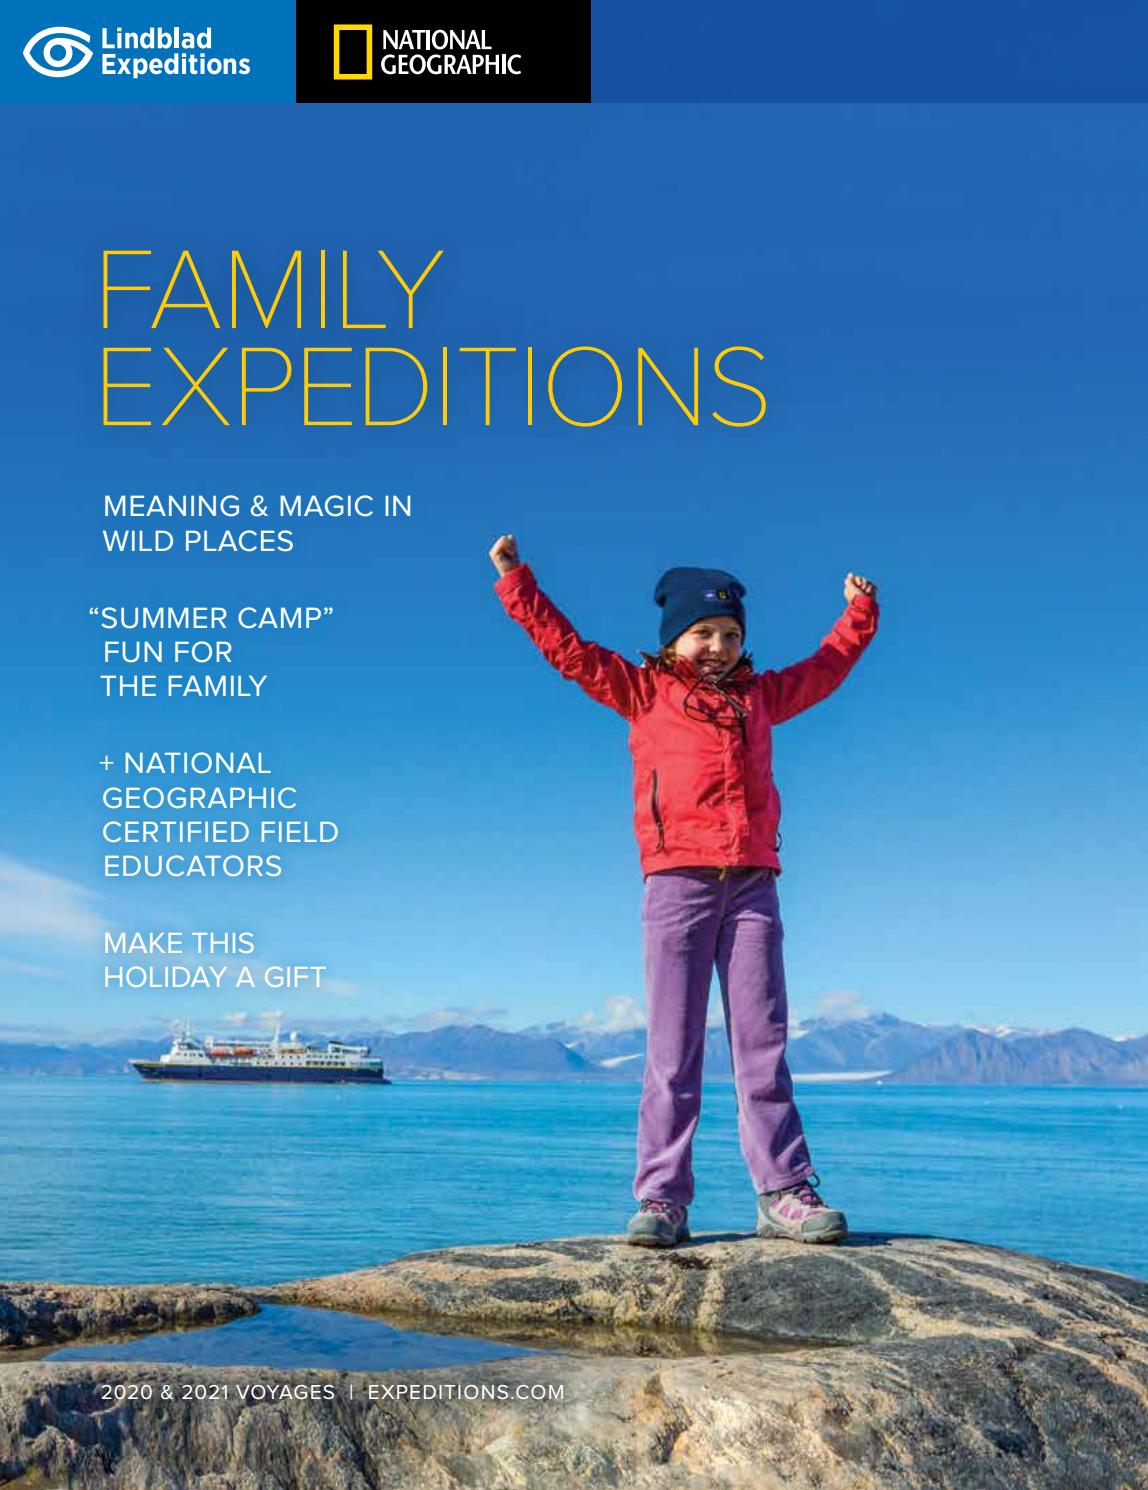 Lindblad Expeditions - Family Expeditions